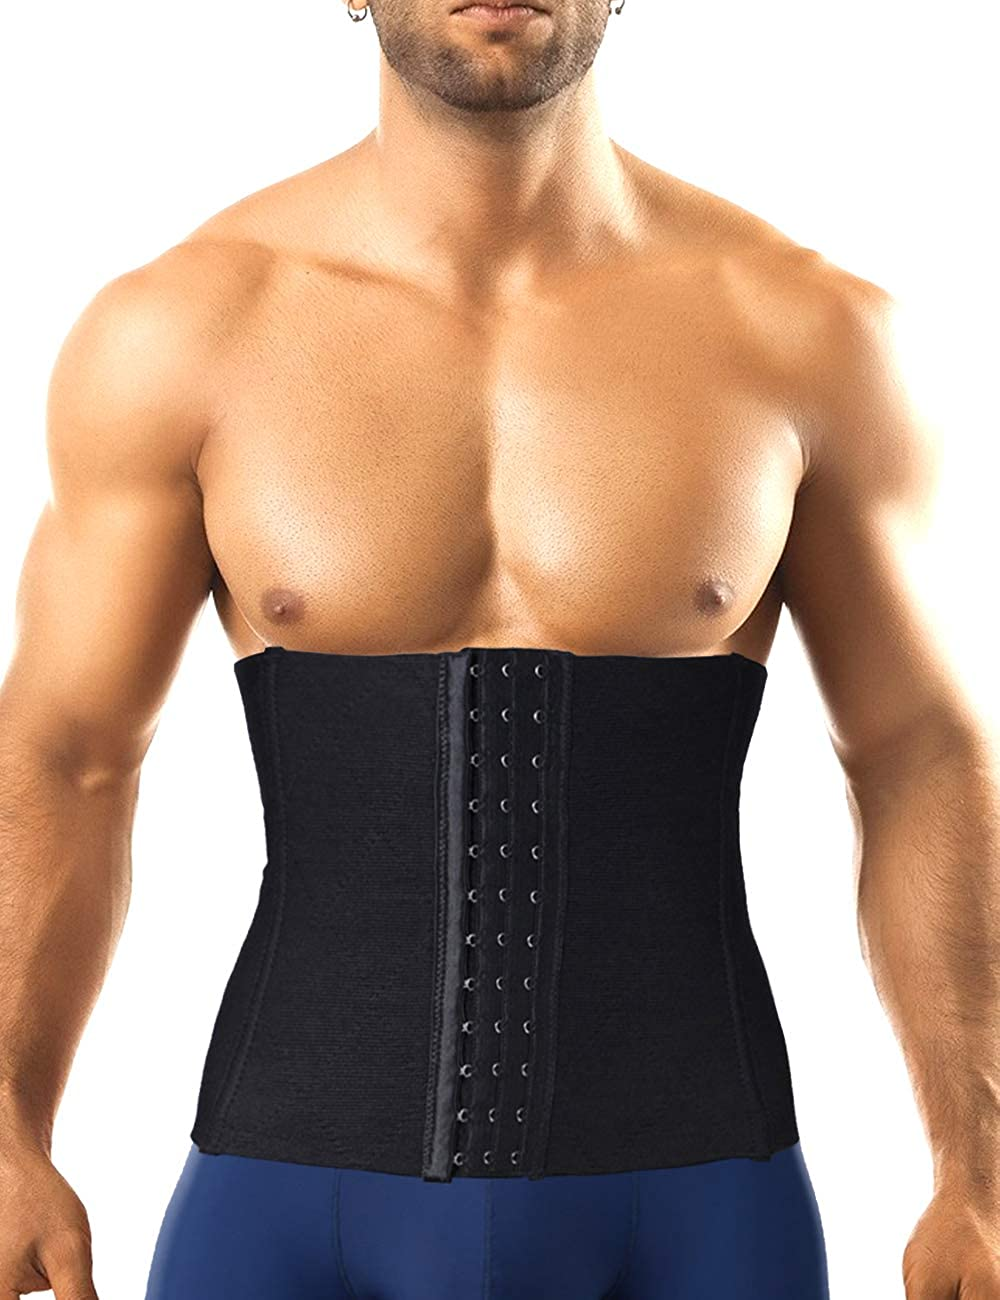 Men Waist Trainer Ranking Now free shipping TOP15 Corset Trimmer Belt Body Weight S Loss Fitness